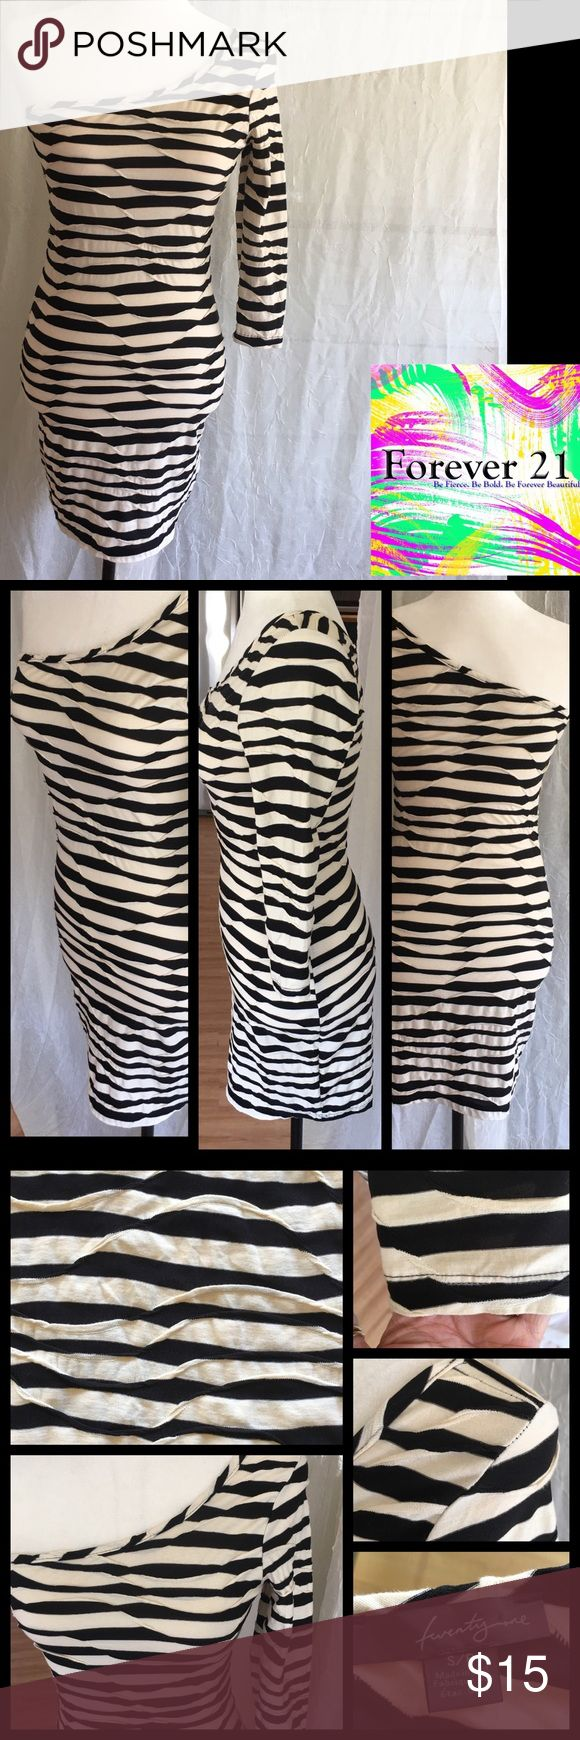 NWOT Forever 21 Striped One Shoulder Bodycon Dress Ready for the club scene this Bodycon outfit features multi tiered fabrics overlapping. Very unusual. Please see pics. One shouldered and Striped in ivory and black. NWOT 50% cotton 50% polyester  Sz S/P Forever 21 Dresses One Shoulder